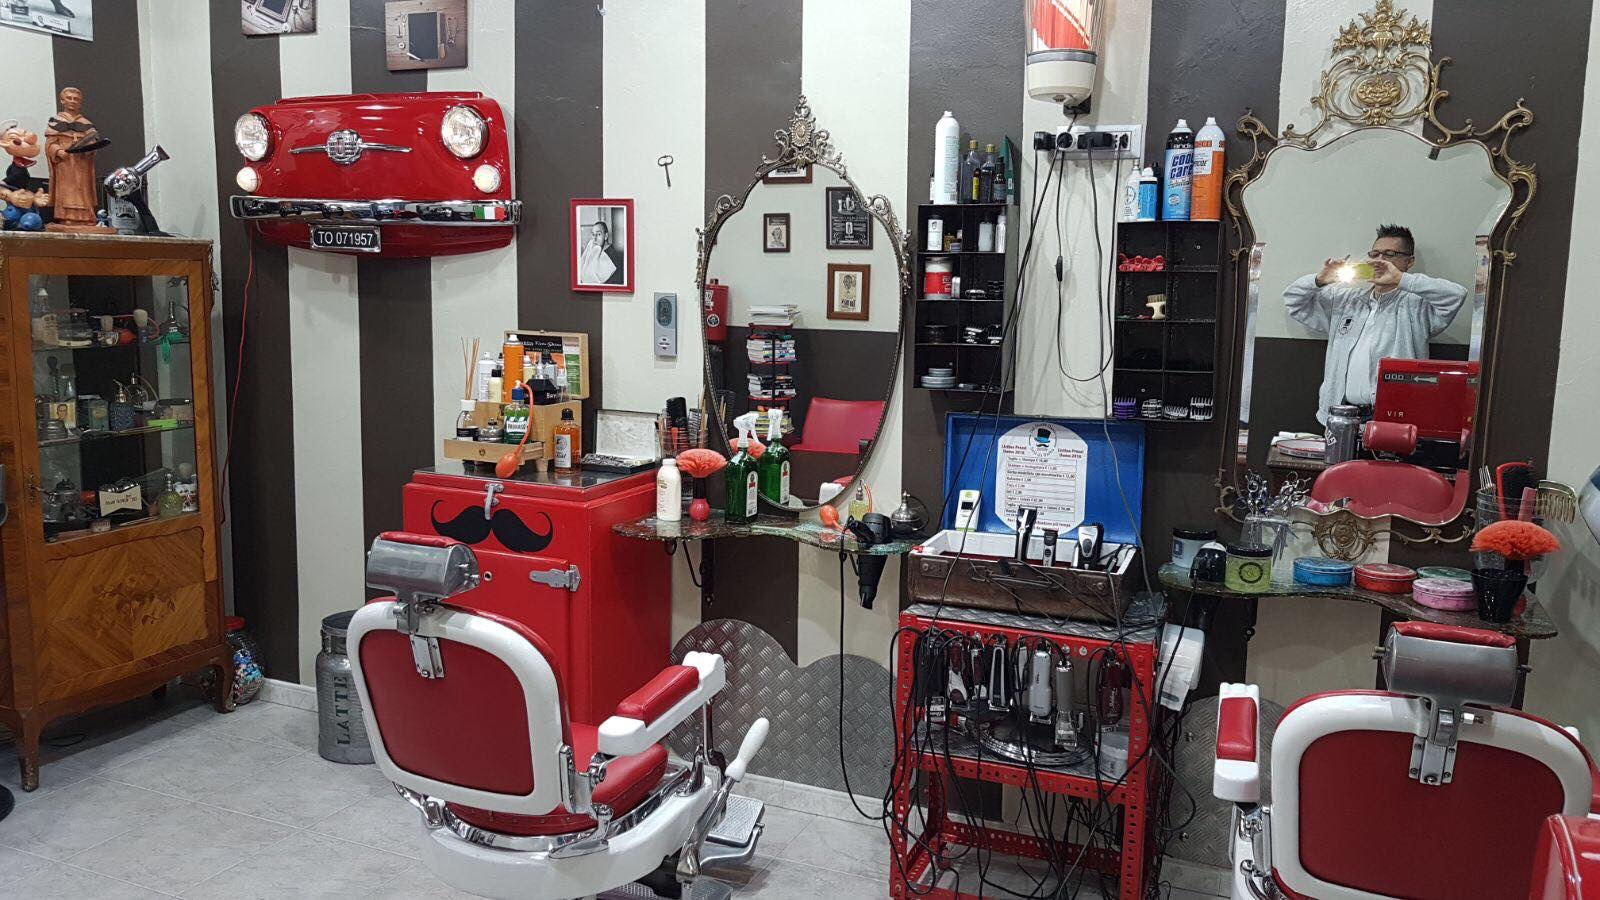 barber shop stile500 ricambi fiat 500 d 39 epoca gadget. Black Bedroom Furniture Sets. Home Design Ideas